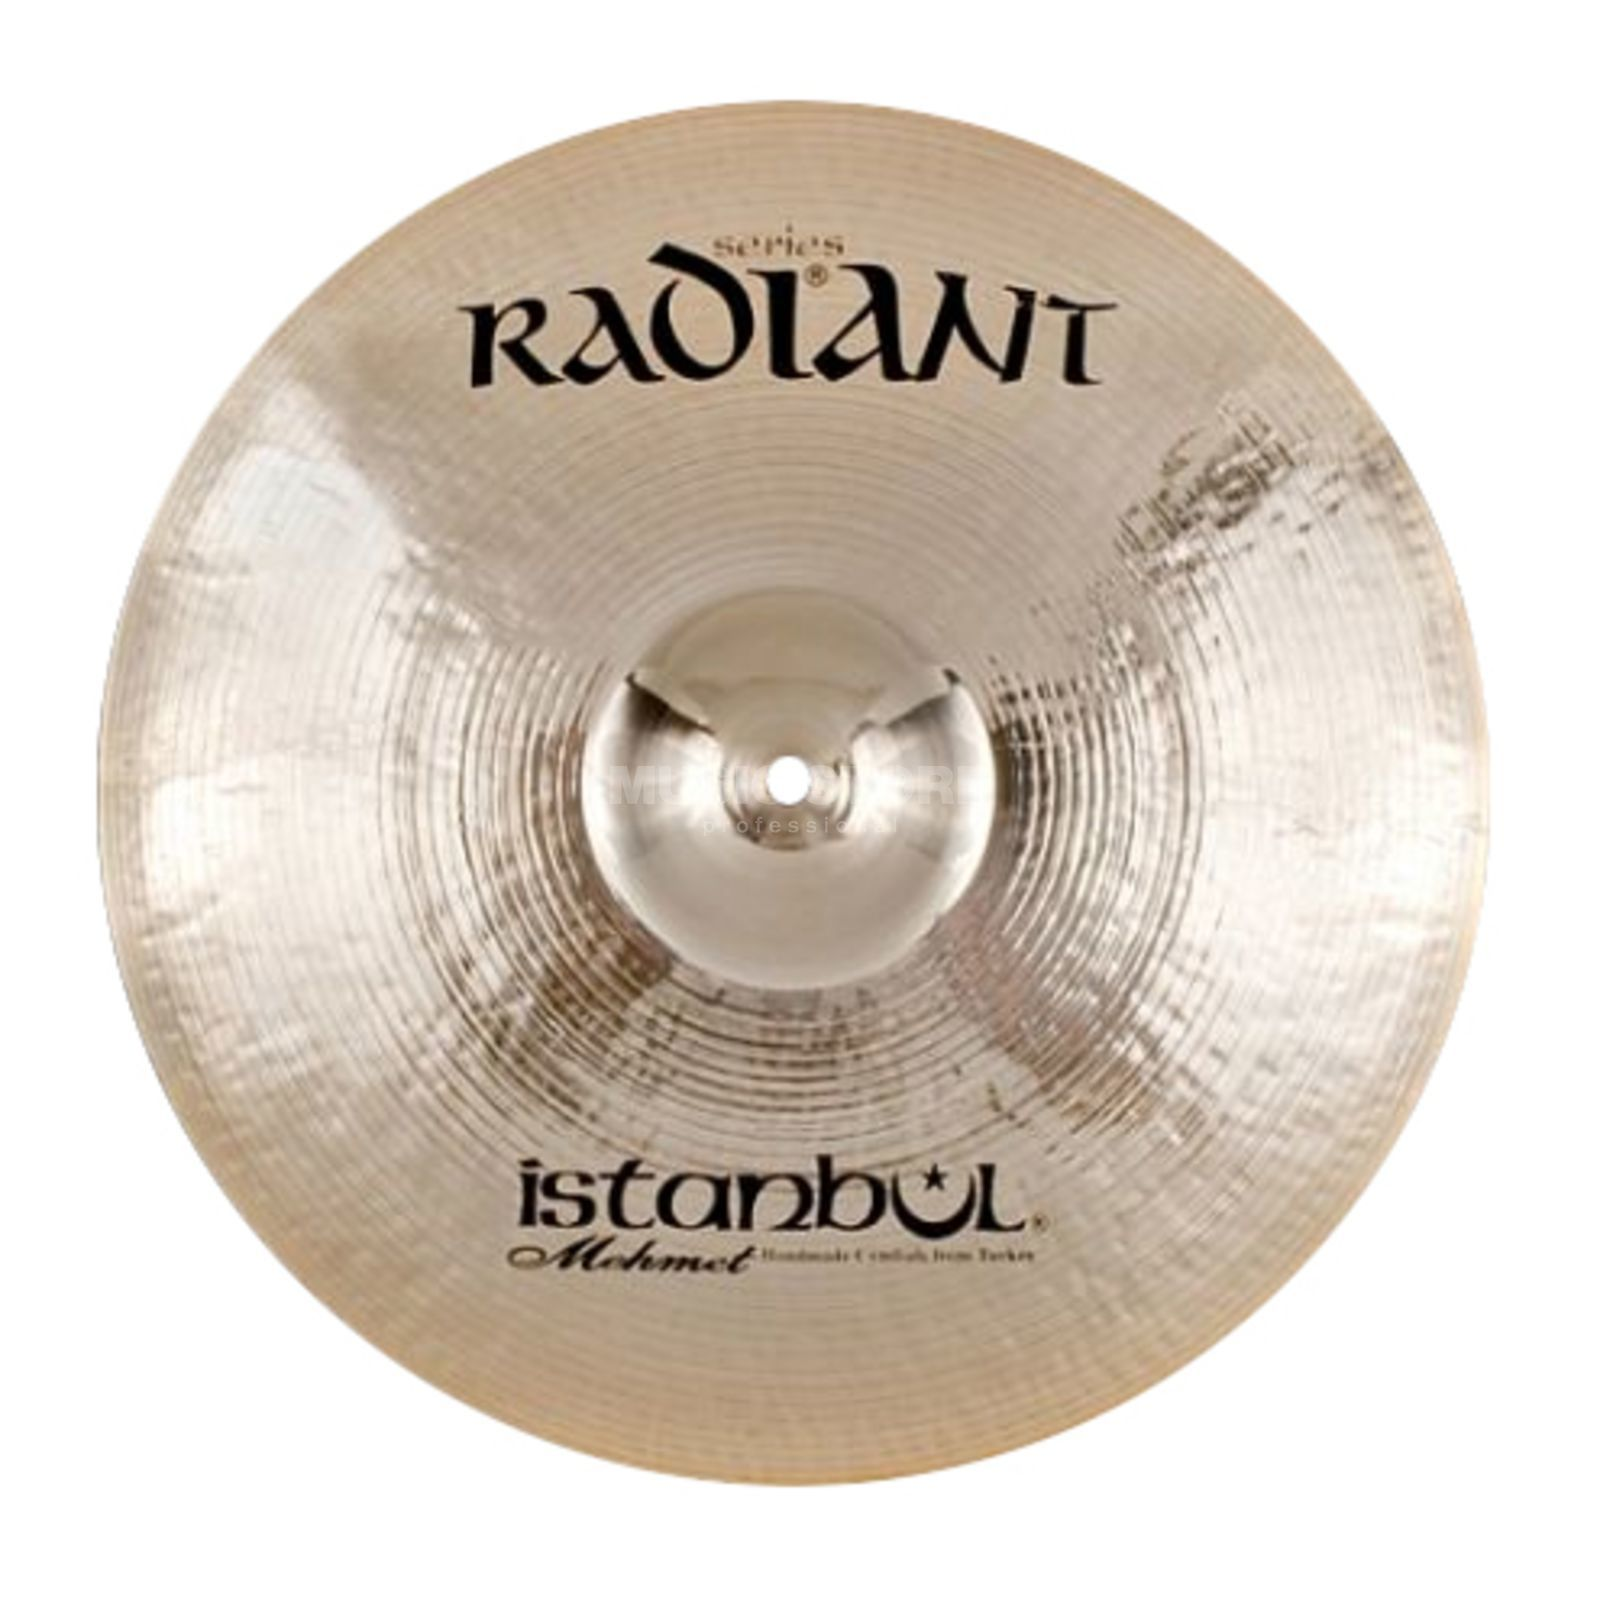 "Istanbul Radiant Medium Crash 17"", R-CM17 Produktbild"